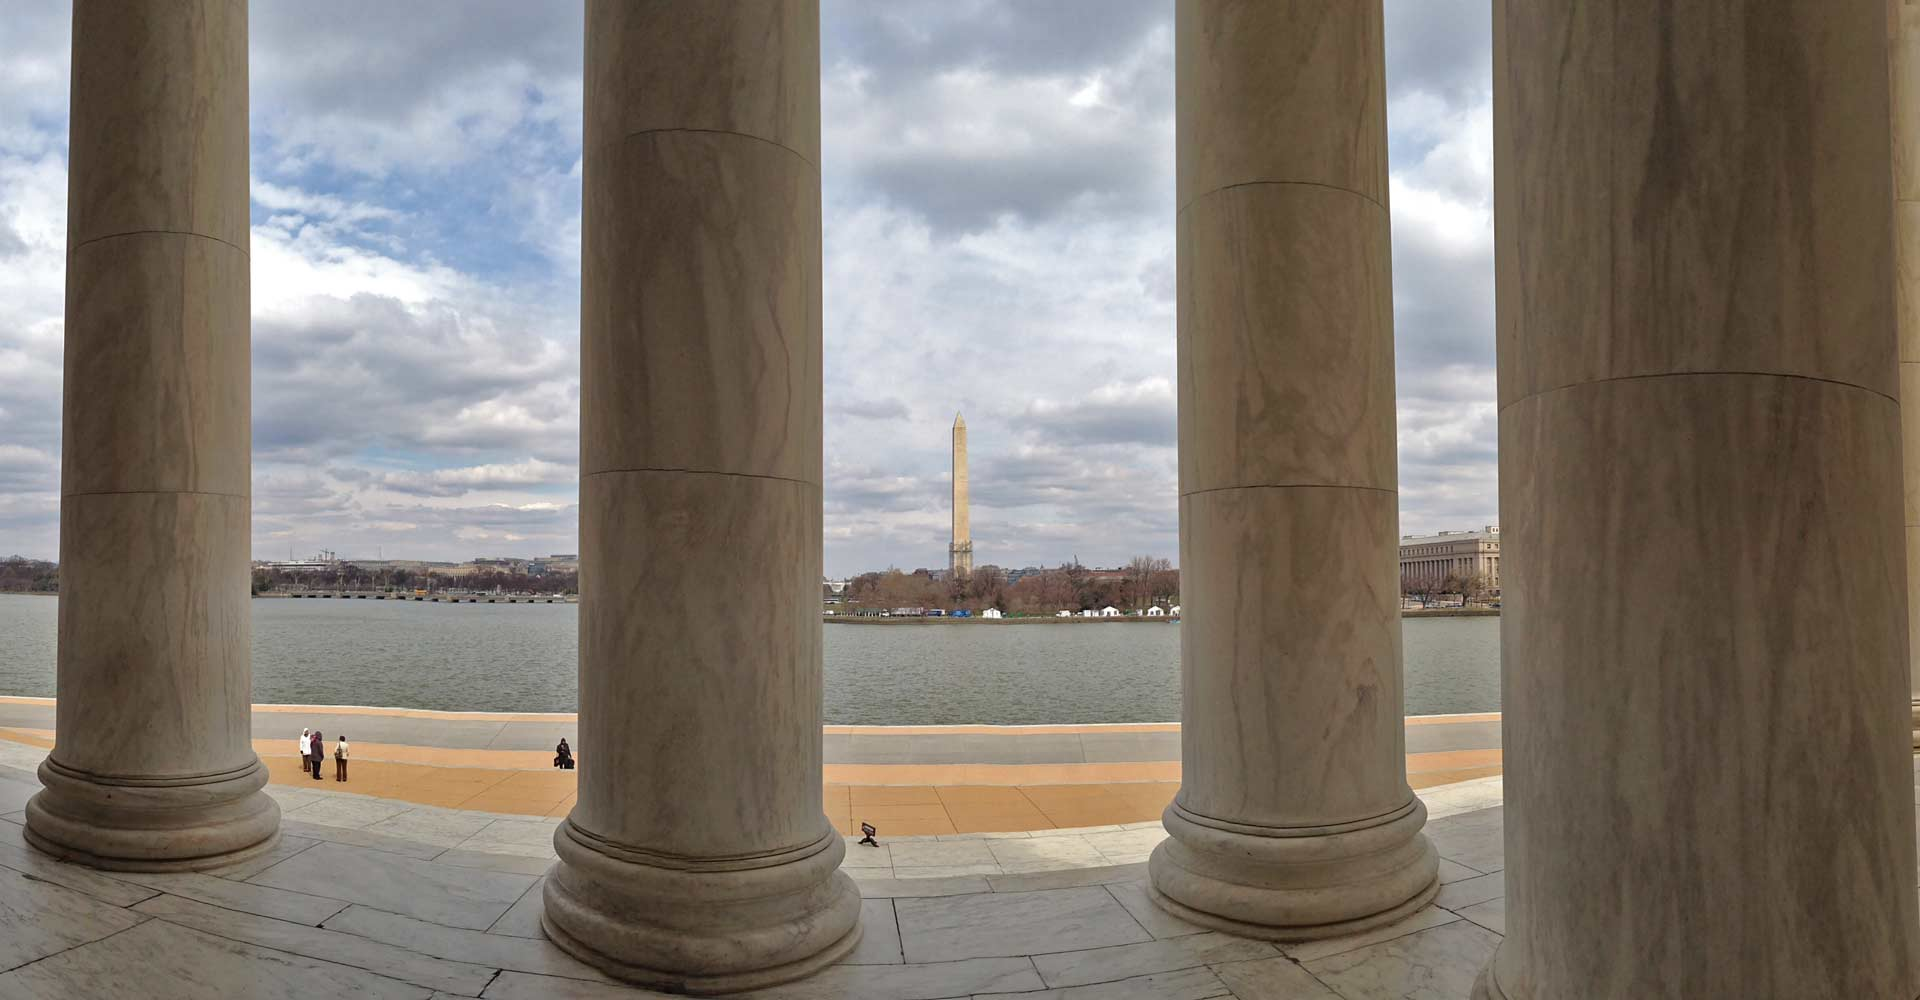 Columns against a Washing D.C. backdrop